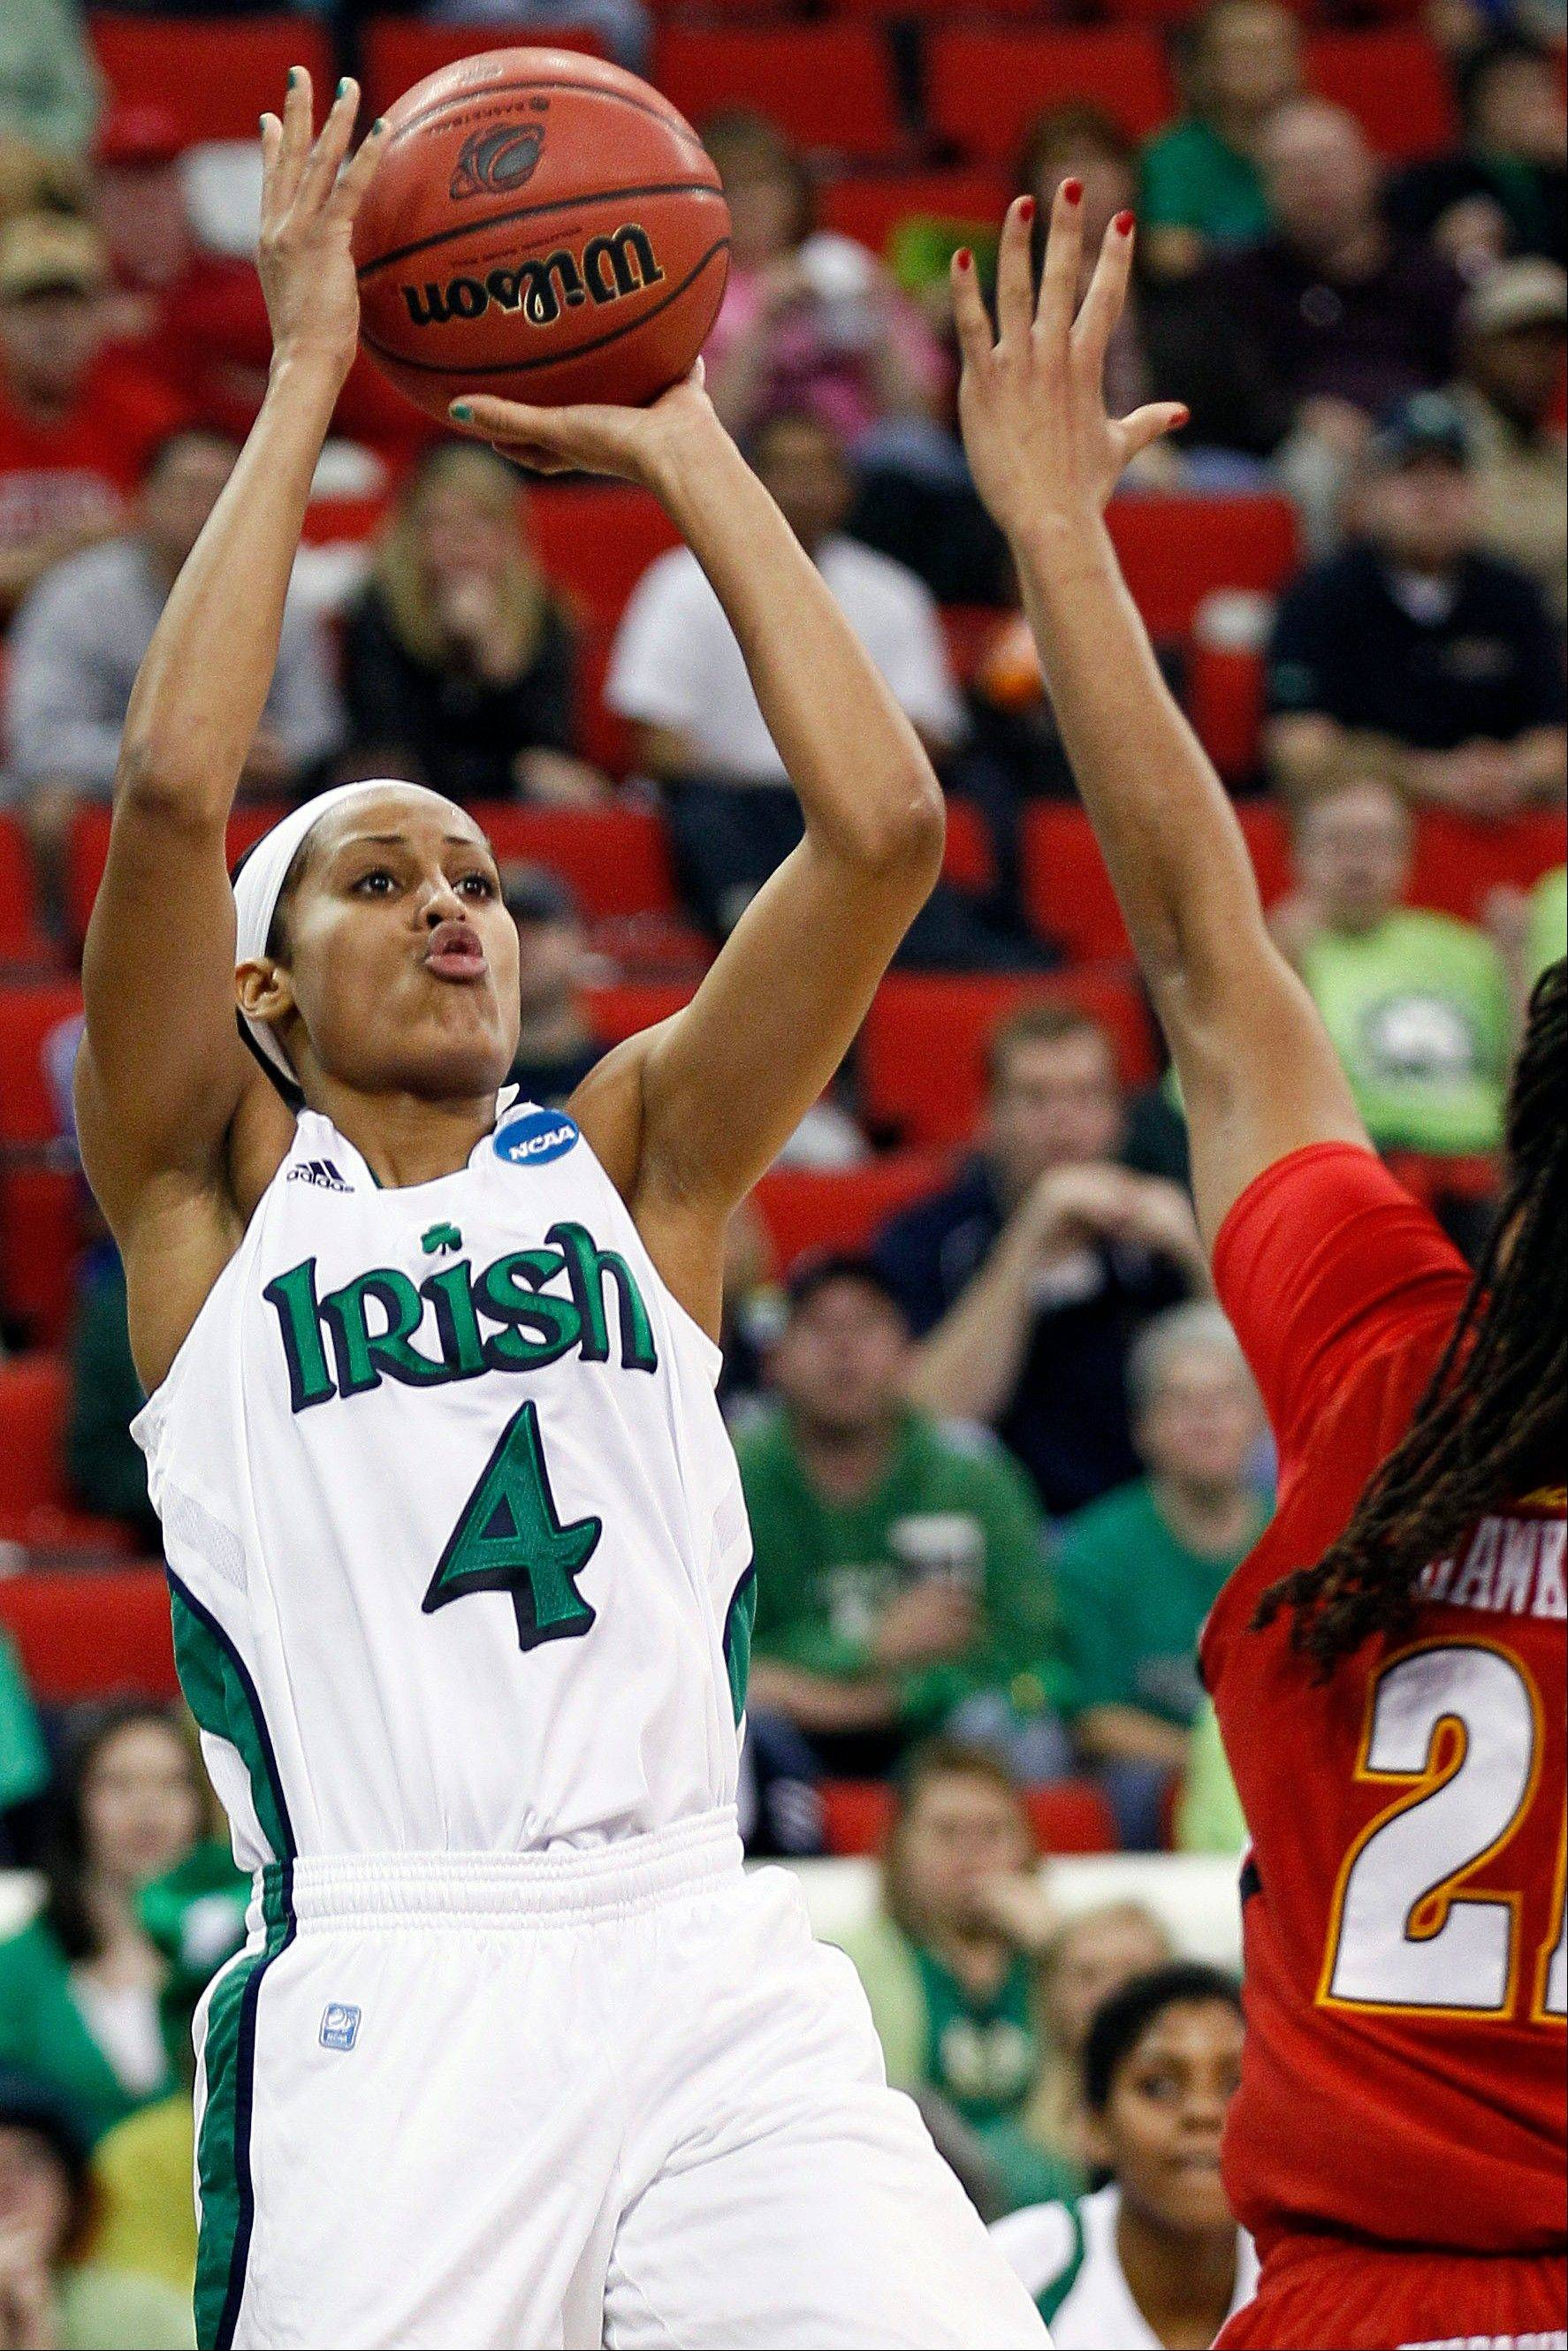 Notre Dame's Skylar Diggins was a unanimous choice to join The Associated Press' women's basketball preseason All-America team, receiving all 40 votes from a national media panel.